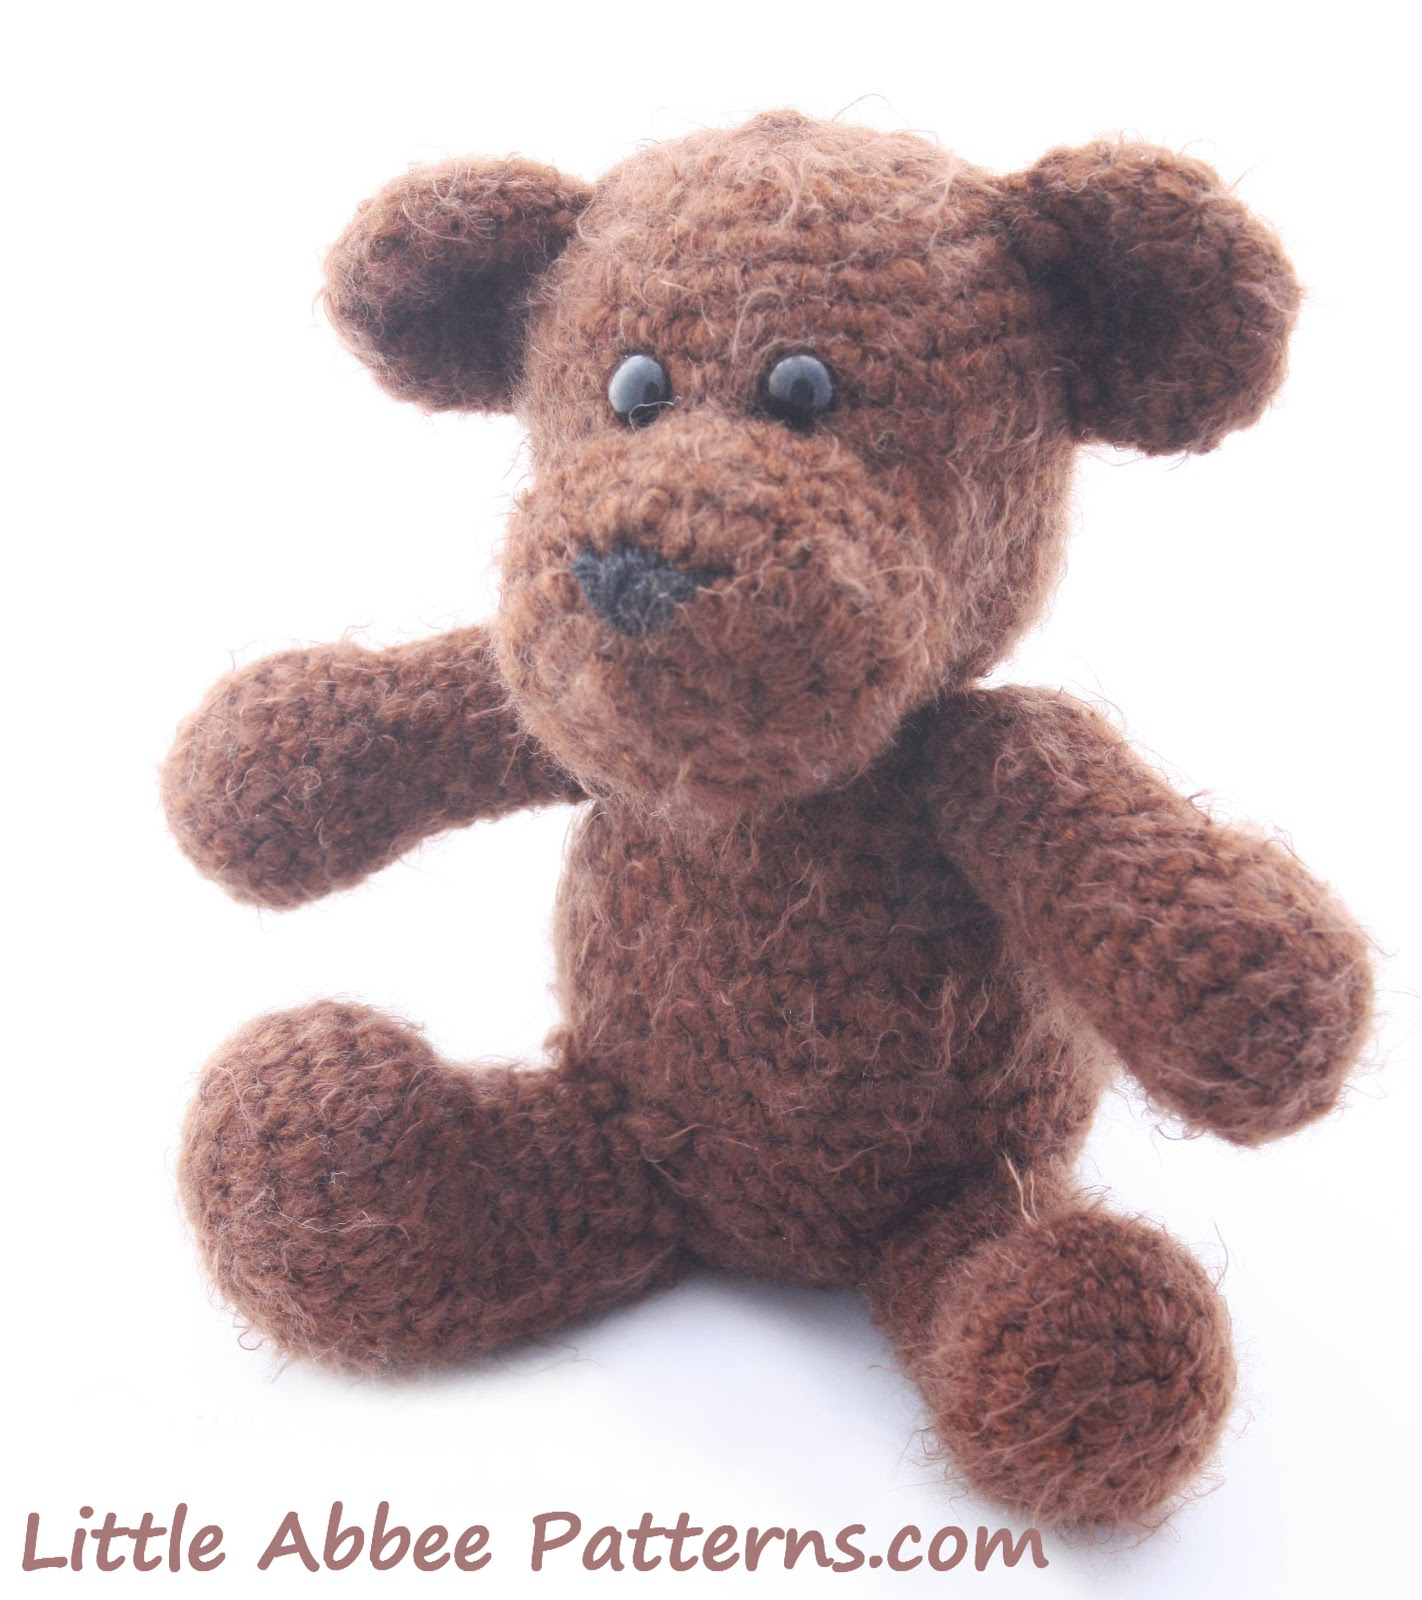 Teddy Bear Sweater knitted with Stockinette stitch- [ EASY Pattern ... | 1600x1422